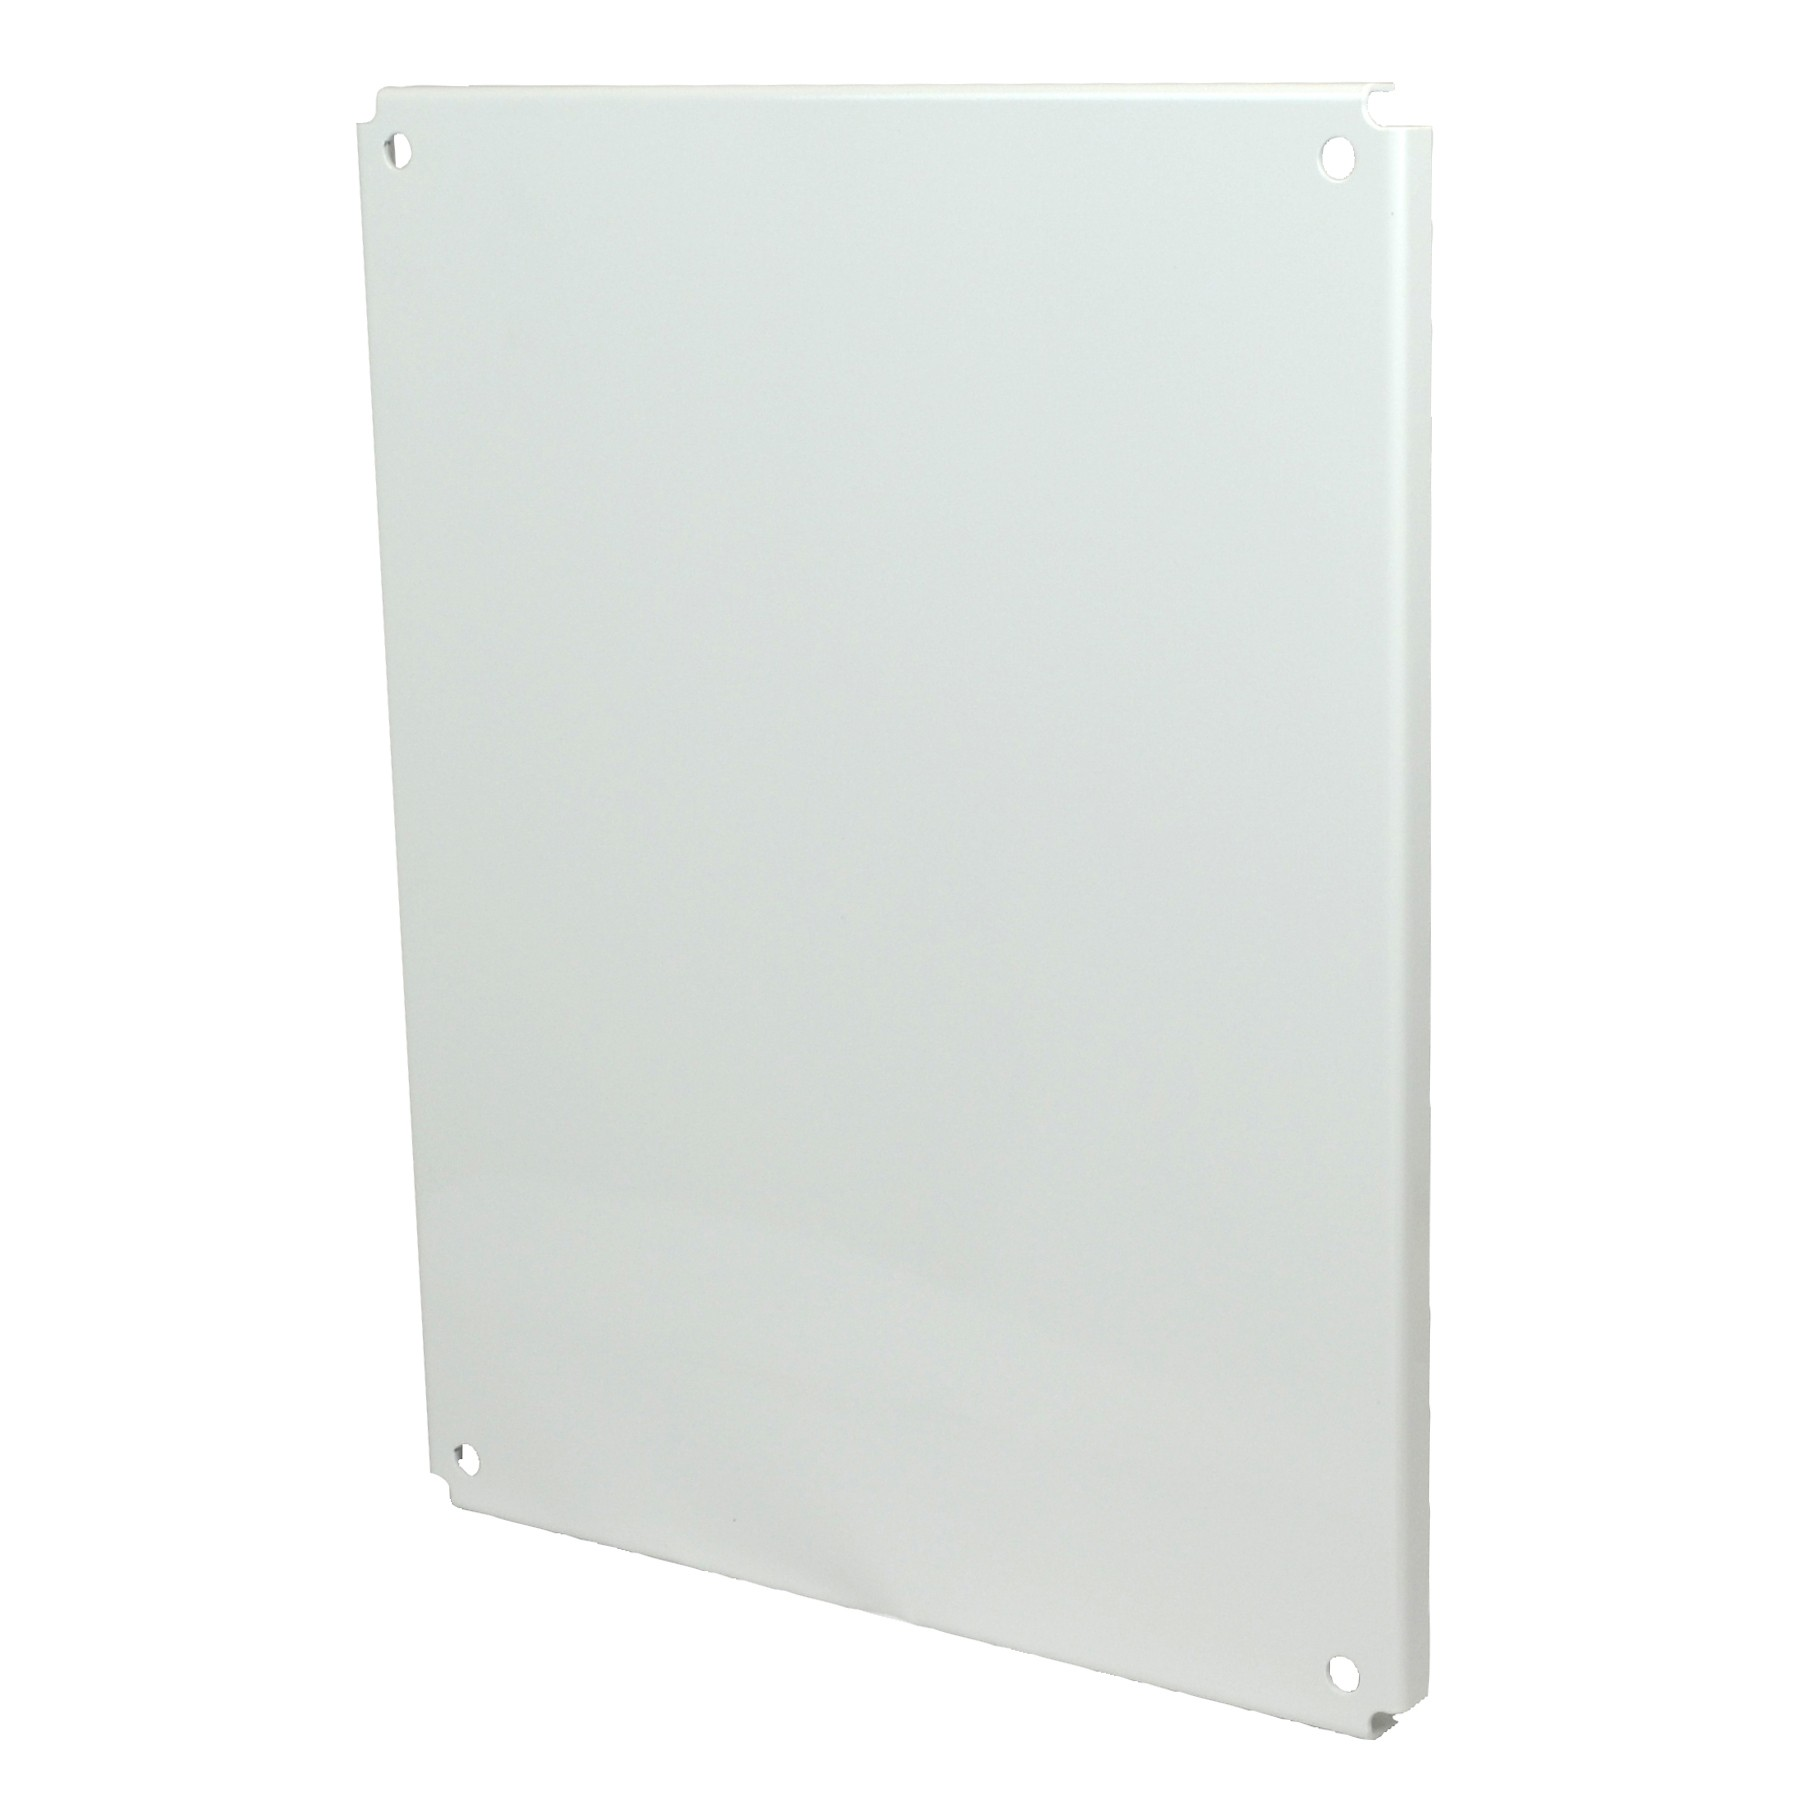 P2420 - Carbon Steel Enclosure Back Panel Kit